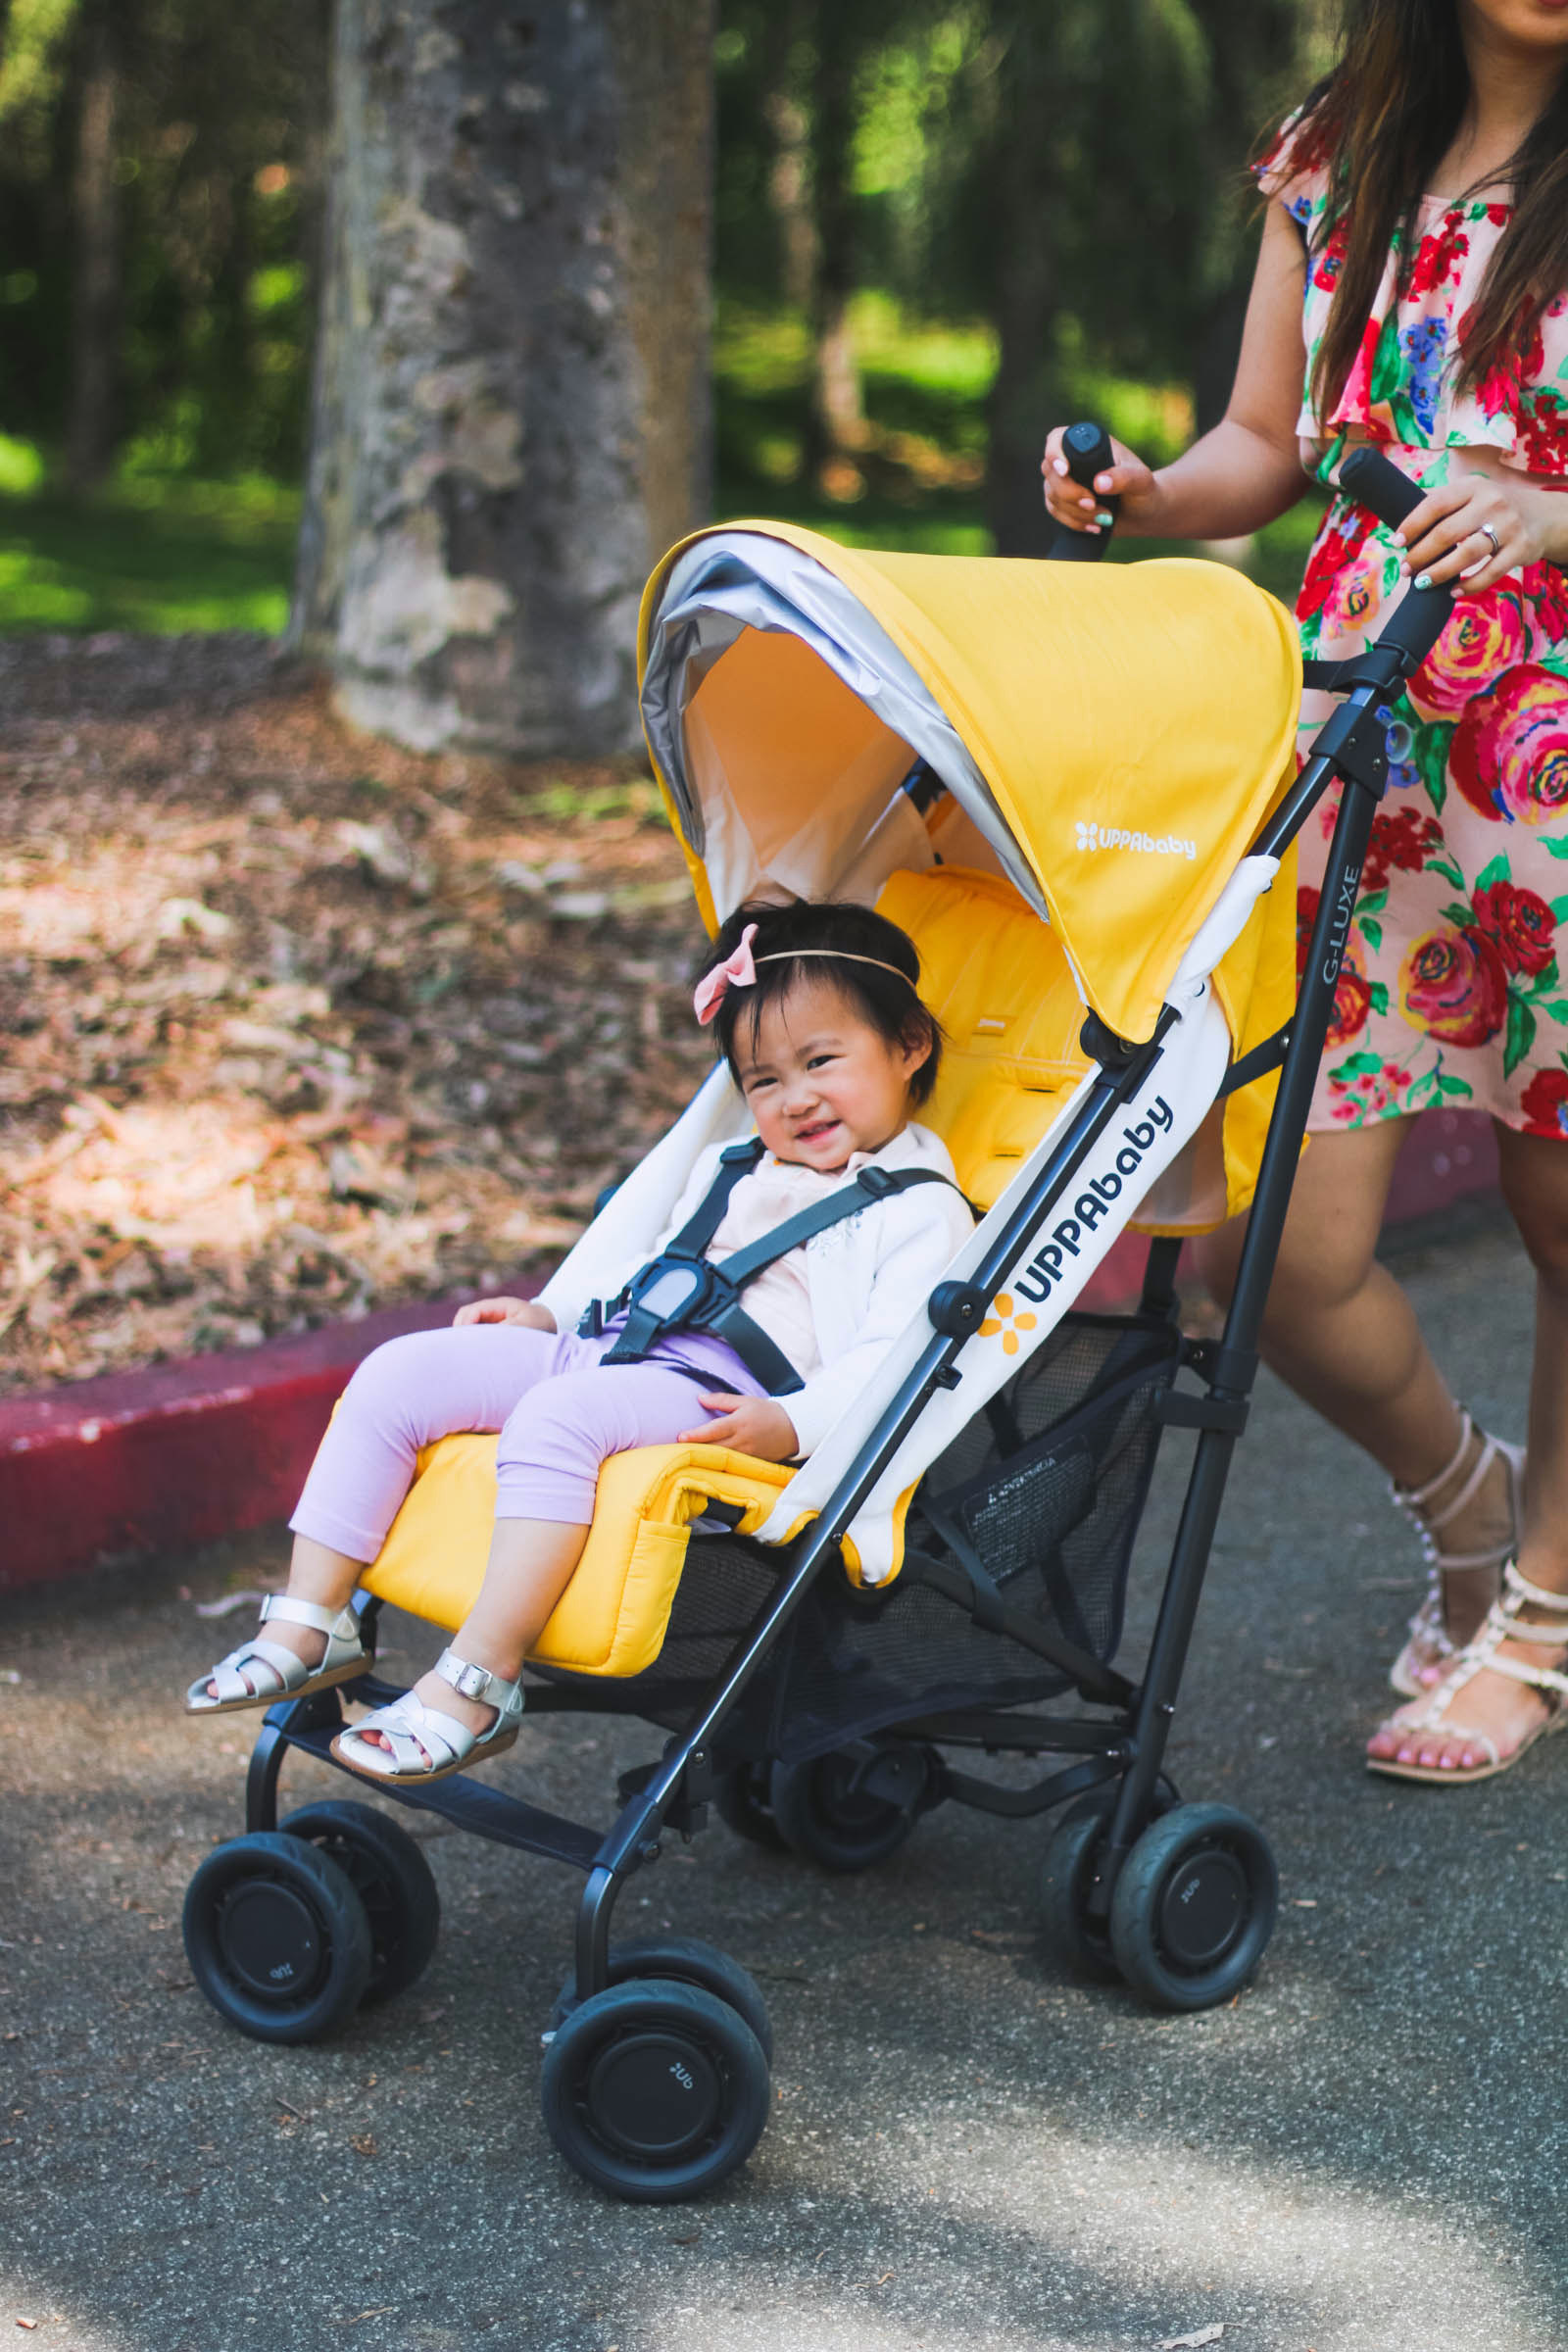 Traveling with the UPPABaby G-Luxe stroller